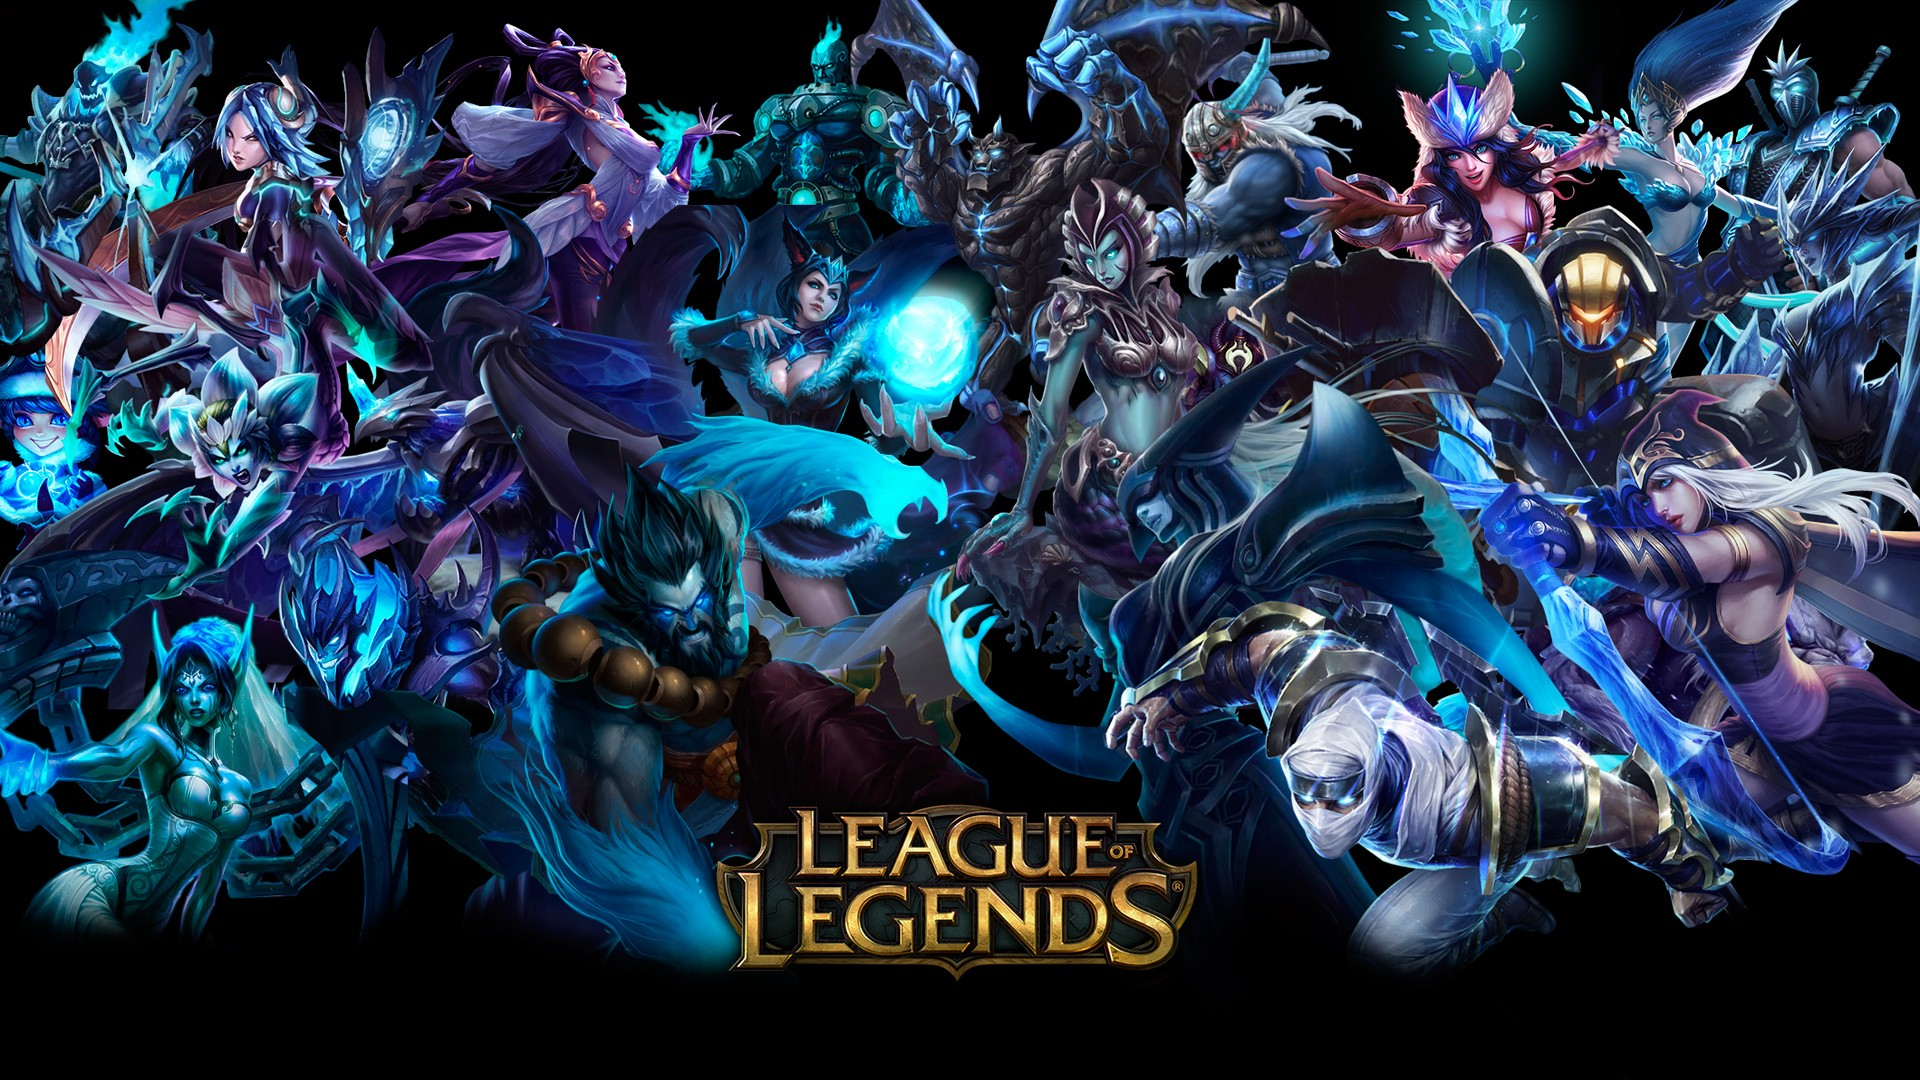 36 lol wallpapers download free cool backgrounds for - League desktop backgrounds ...